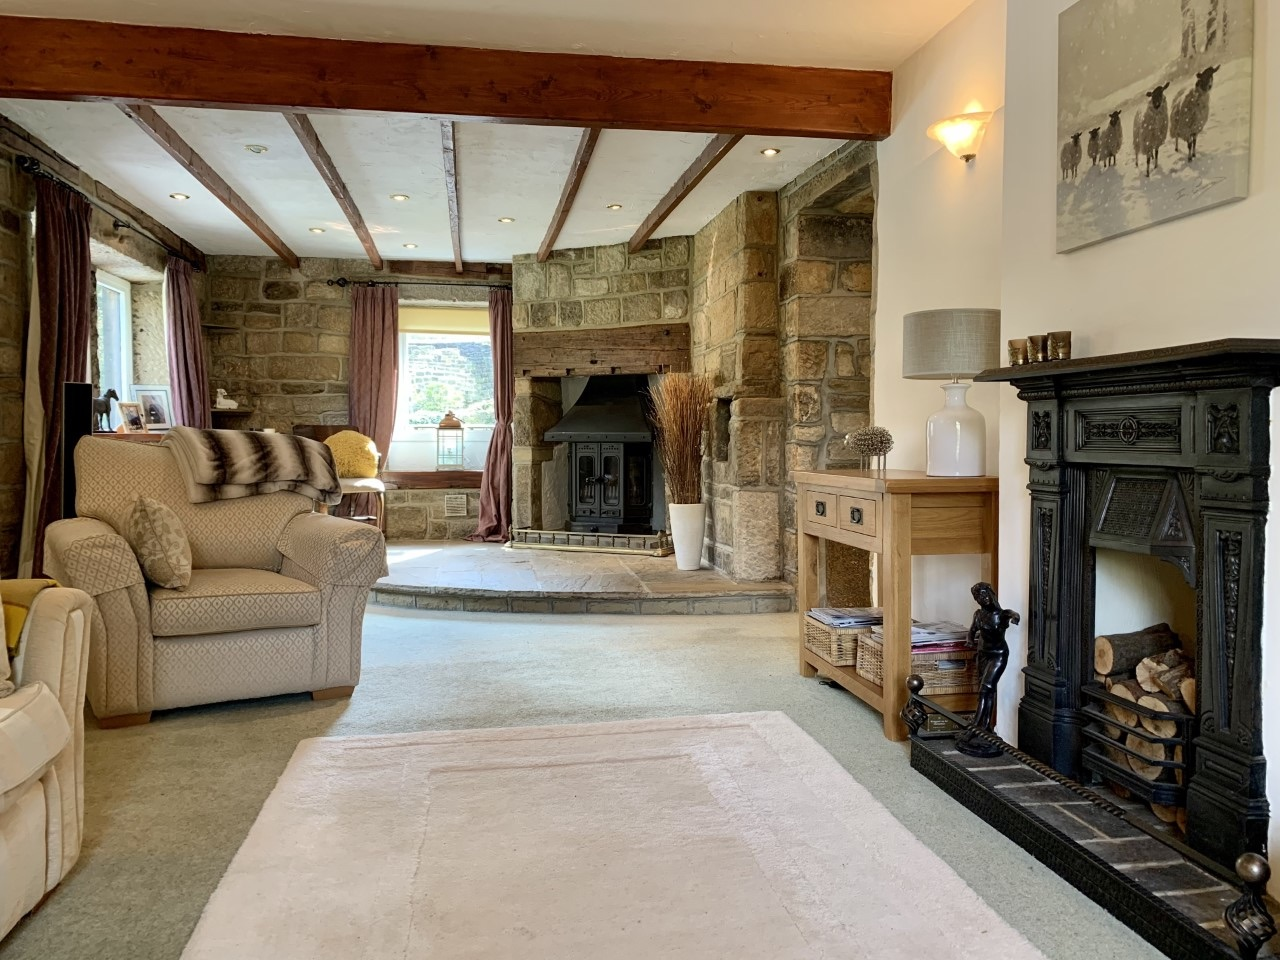 3 bedroom detached house For Sale in Calderdale - Photograph 3.